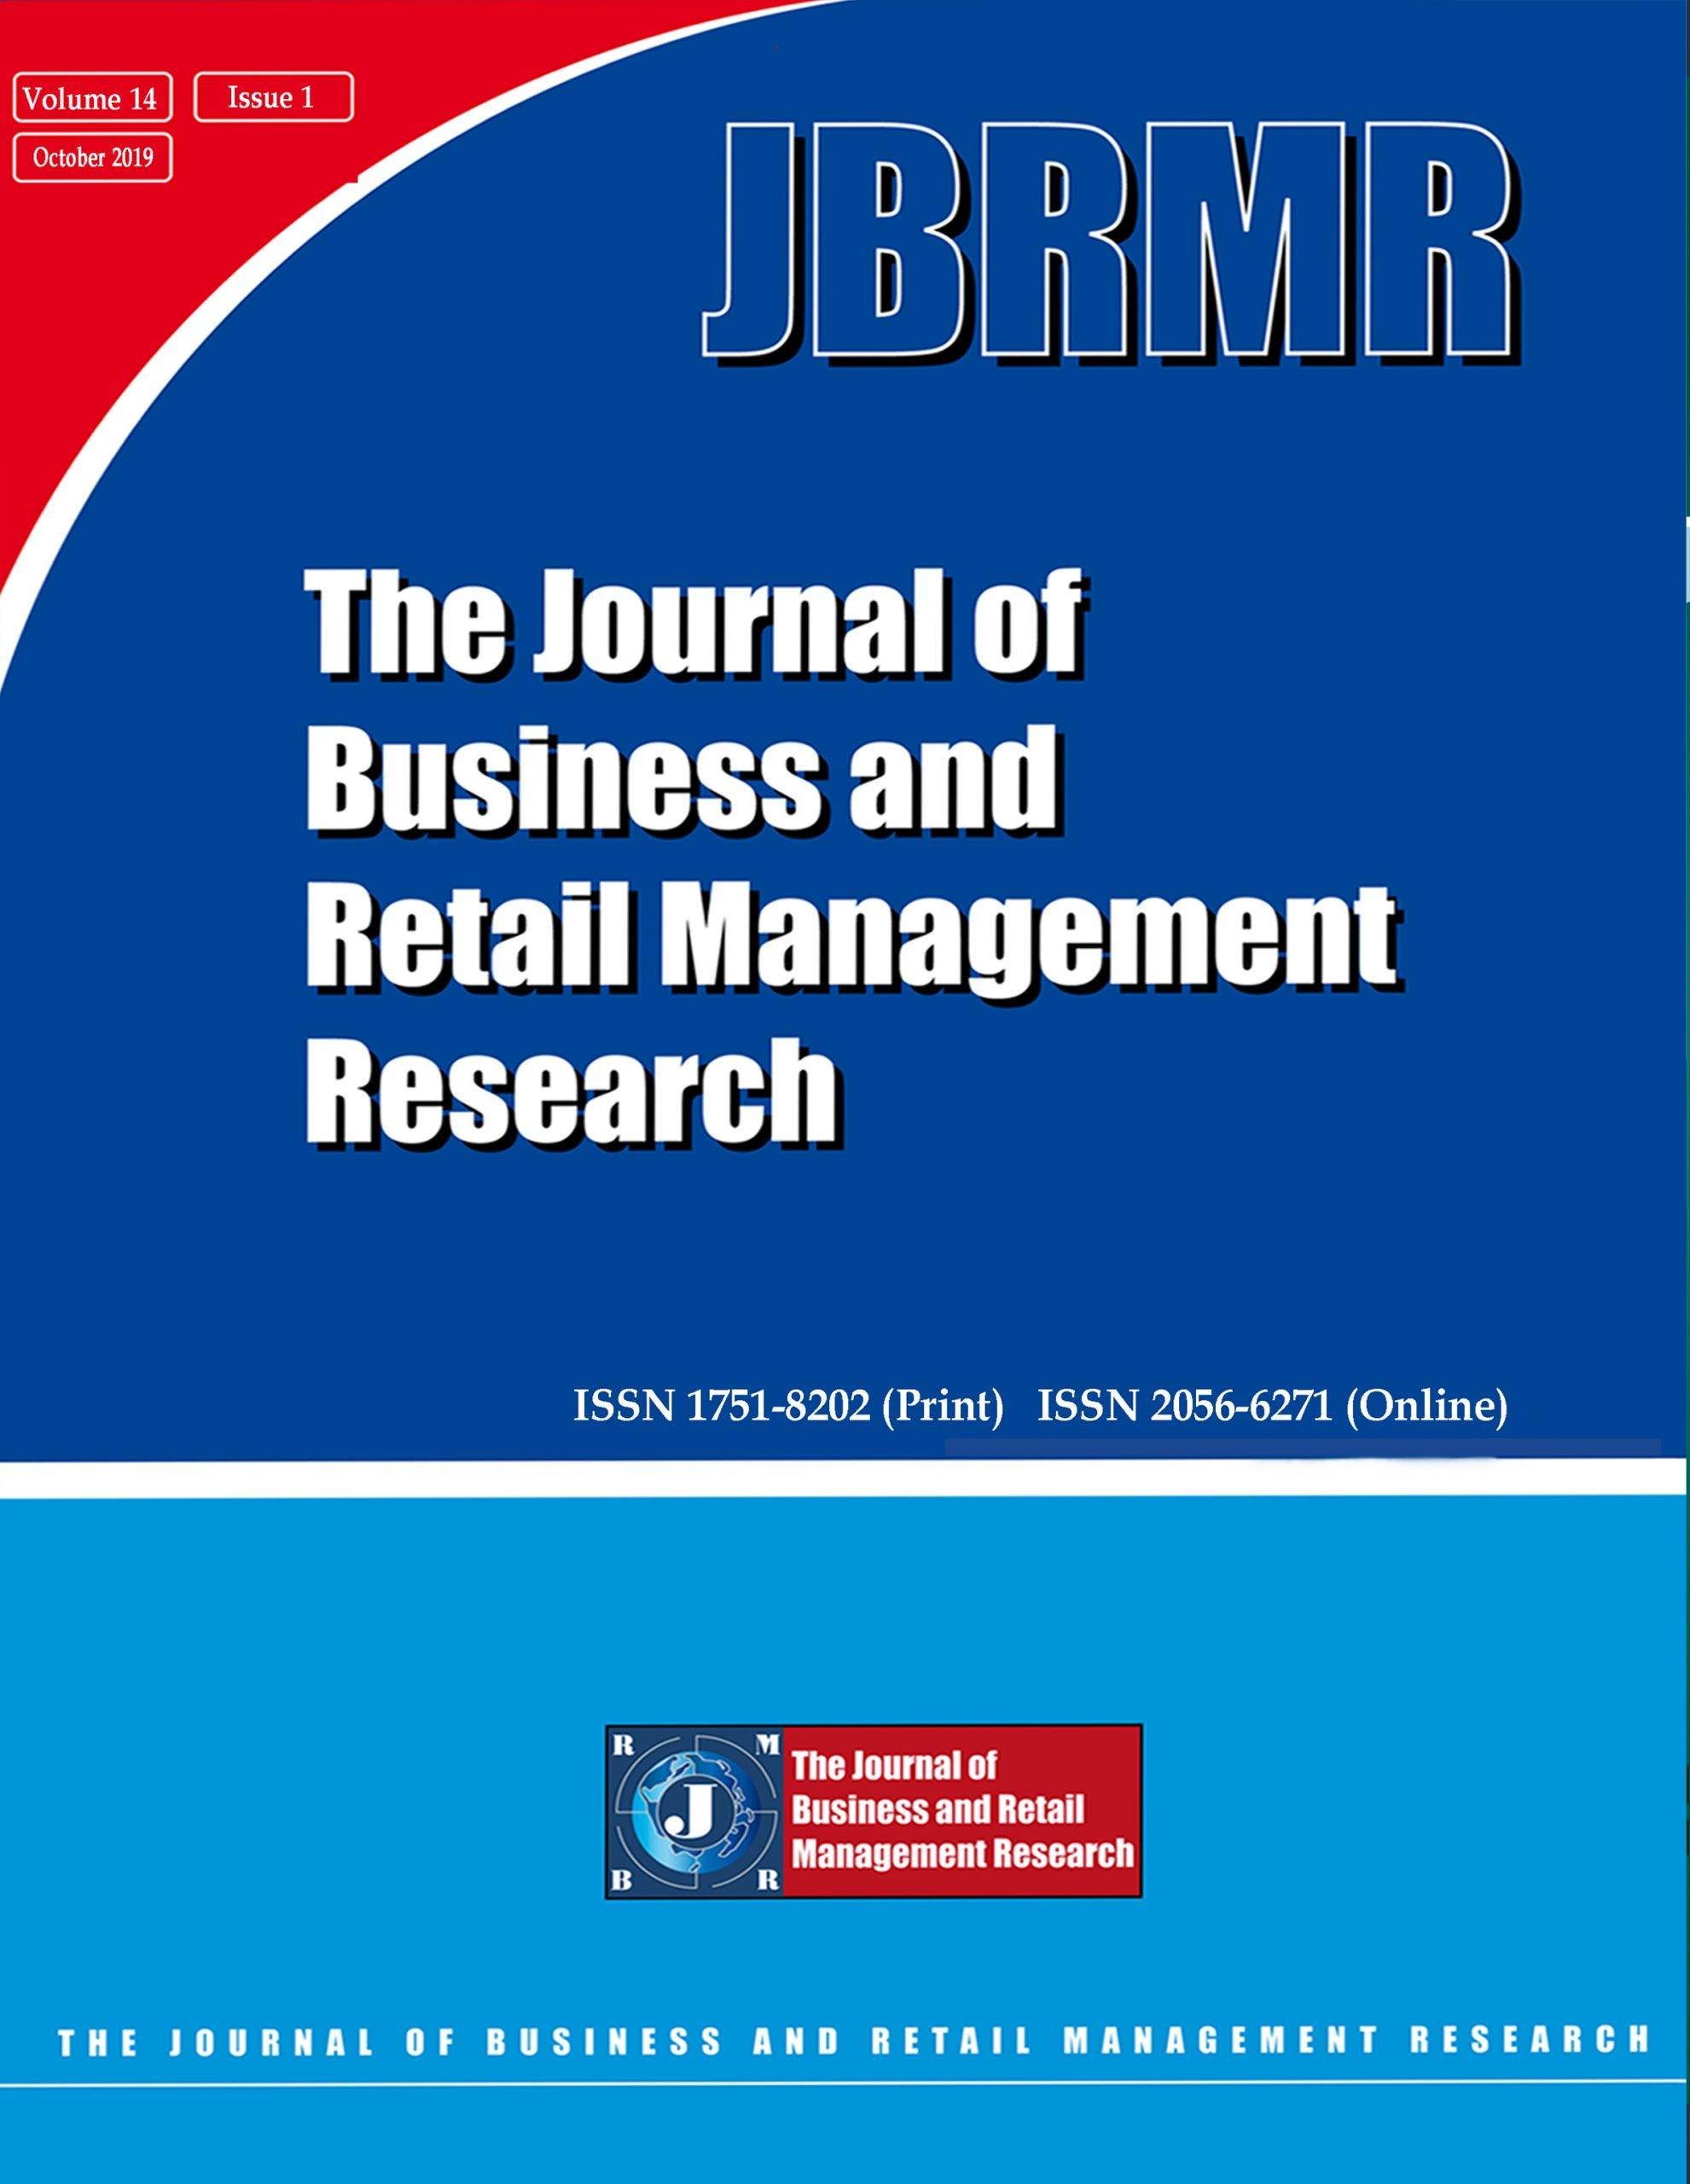 Journal of Business and Retail Management Research